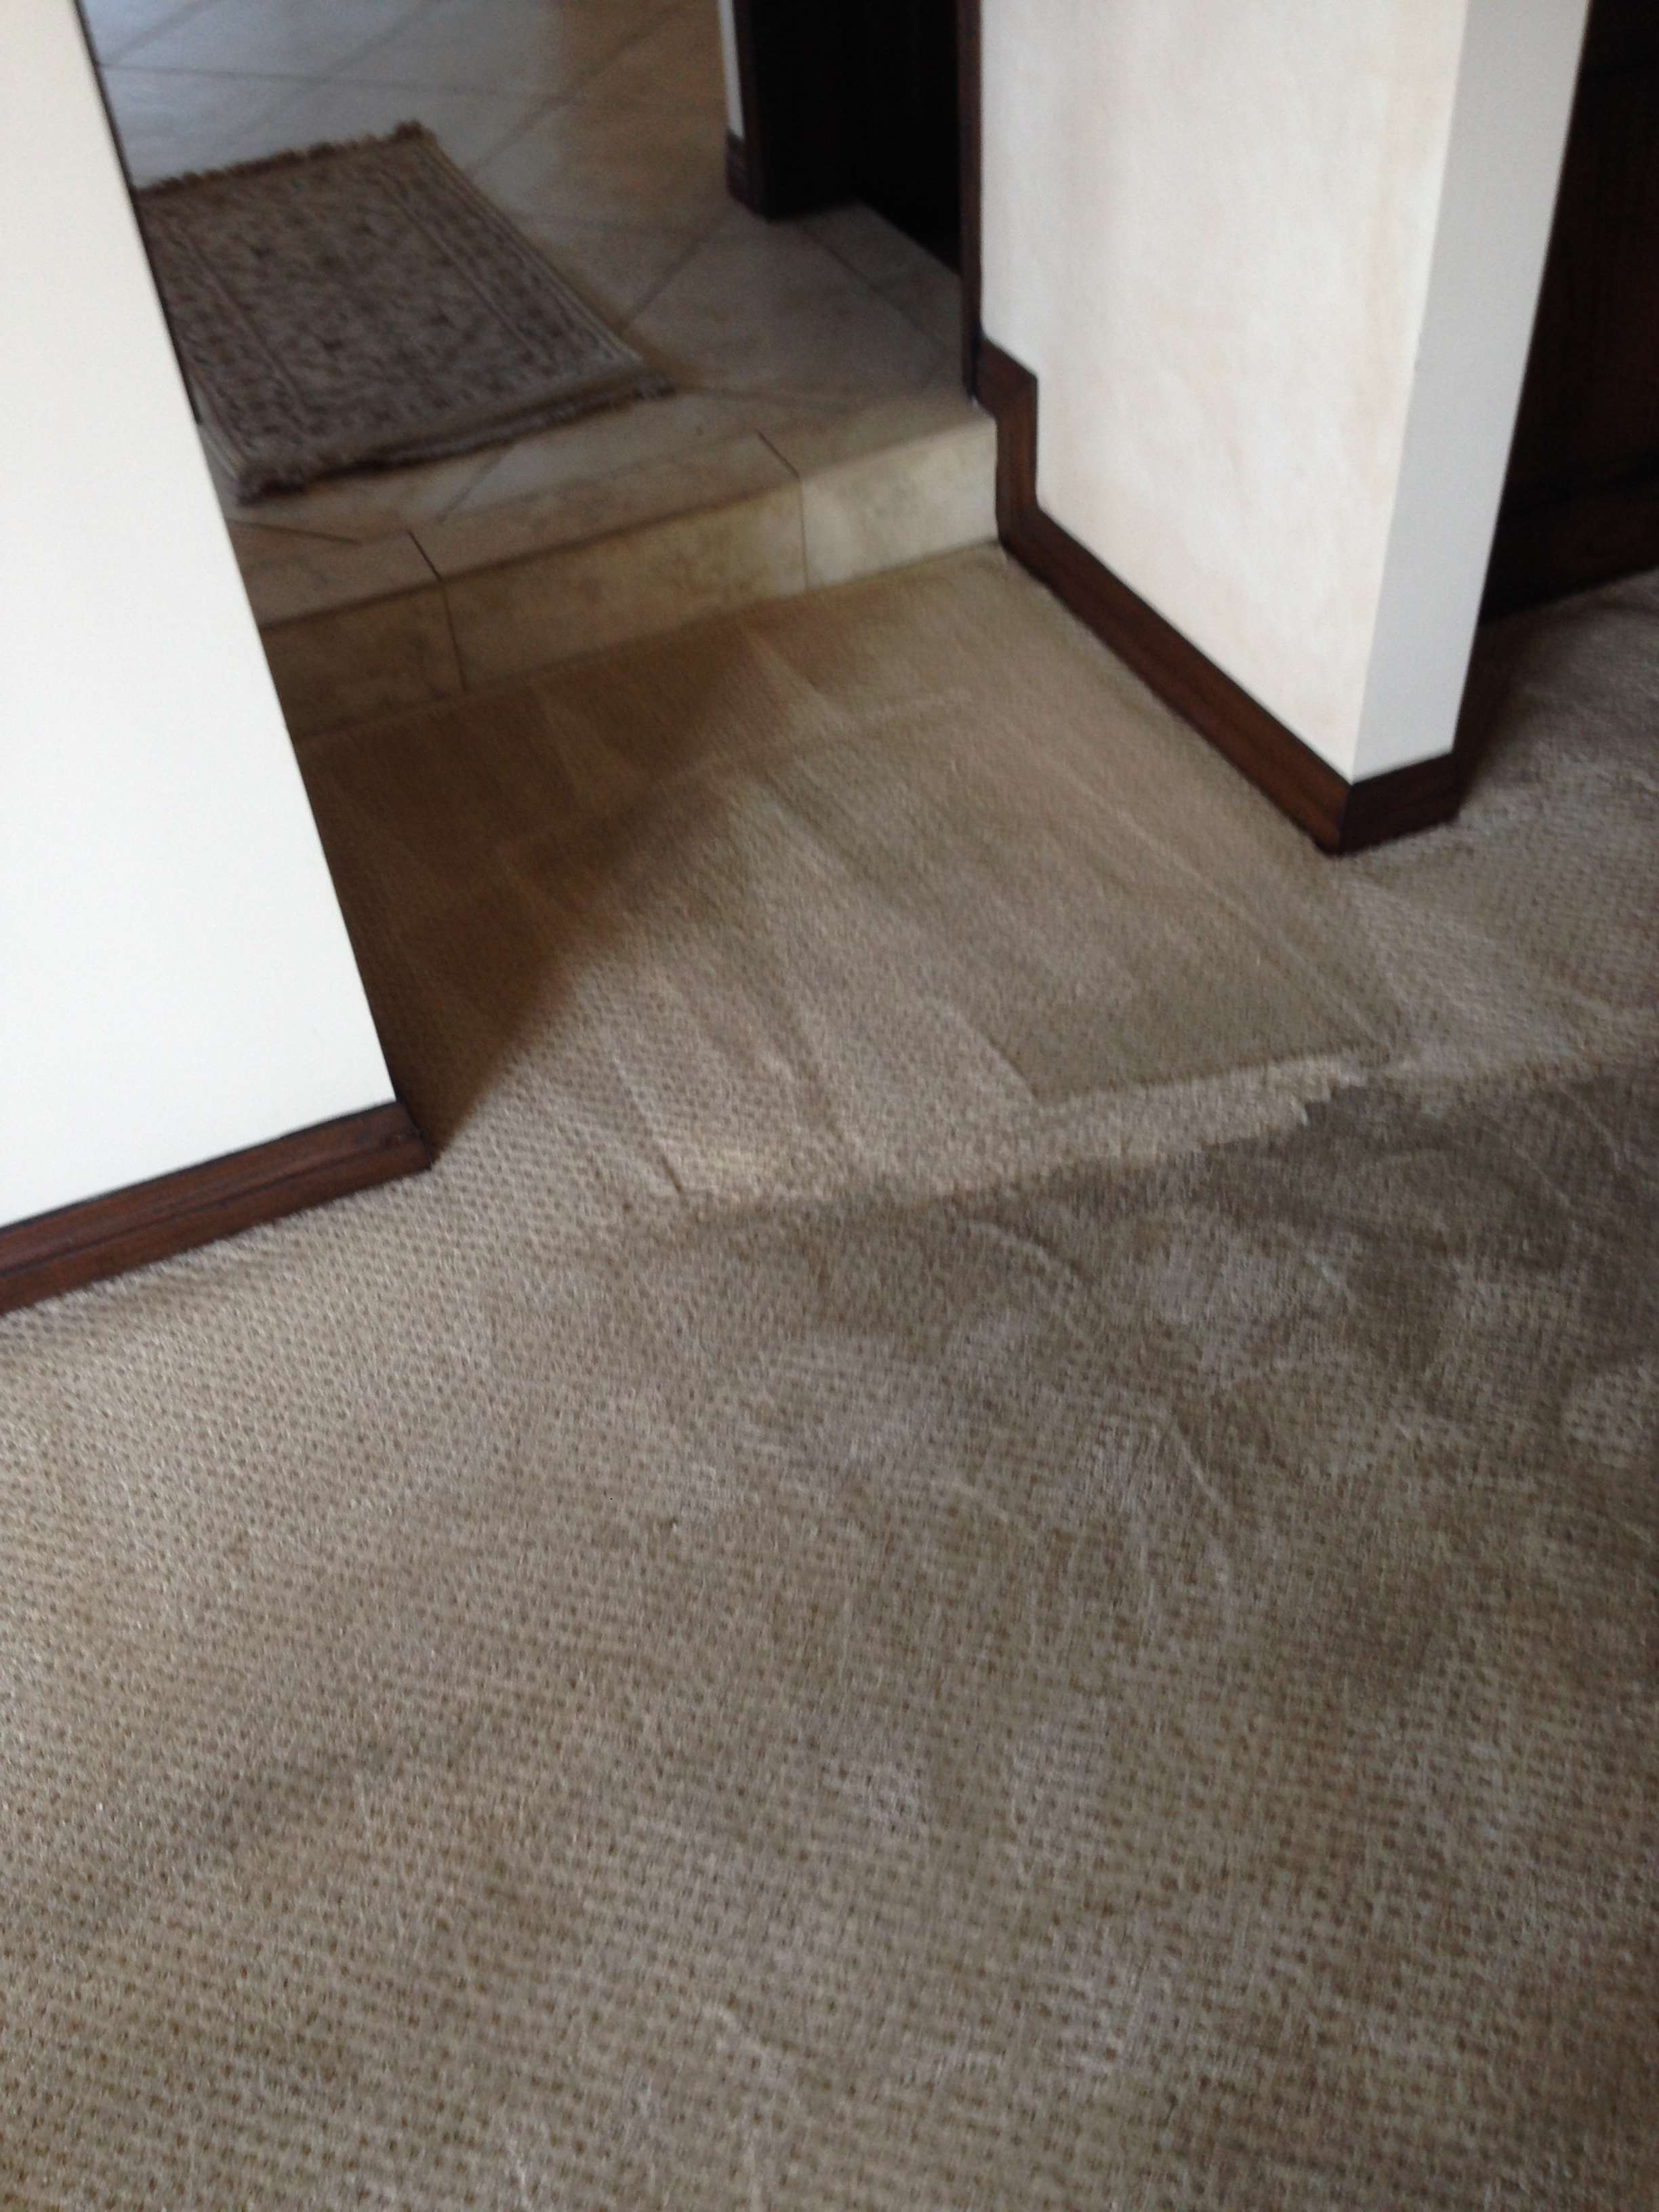 Professional Carpet Cleaner Green Carpet Cleaning Oc